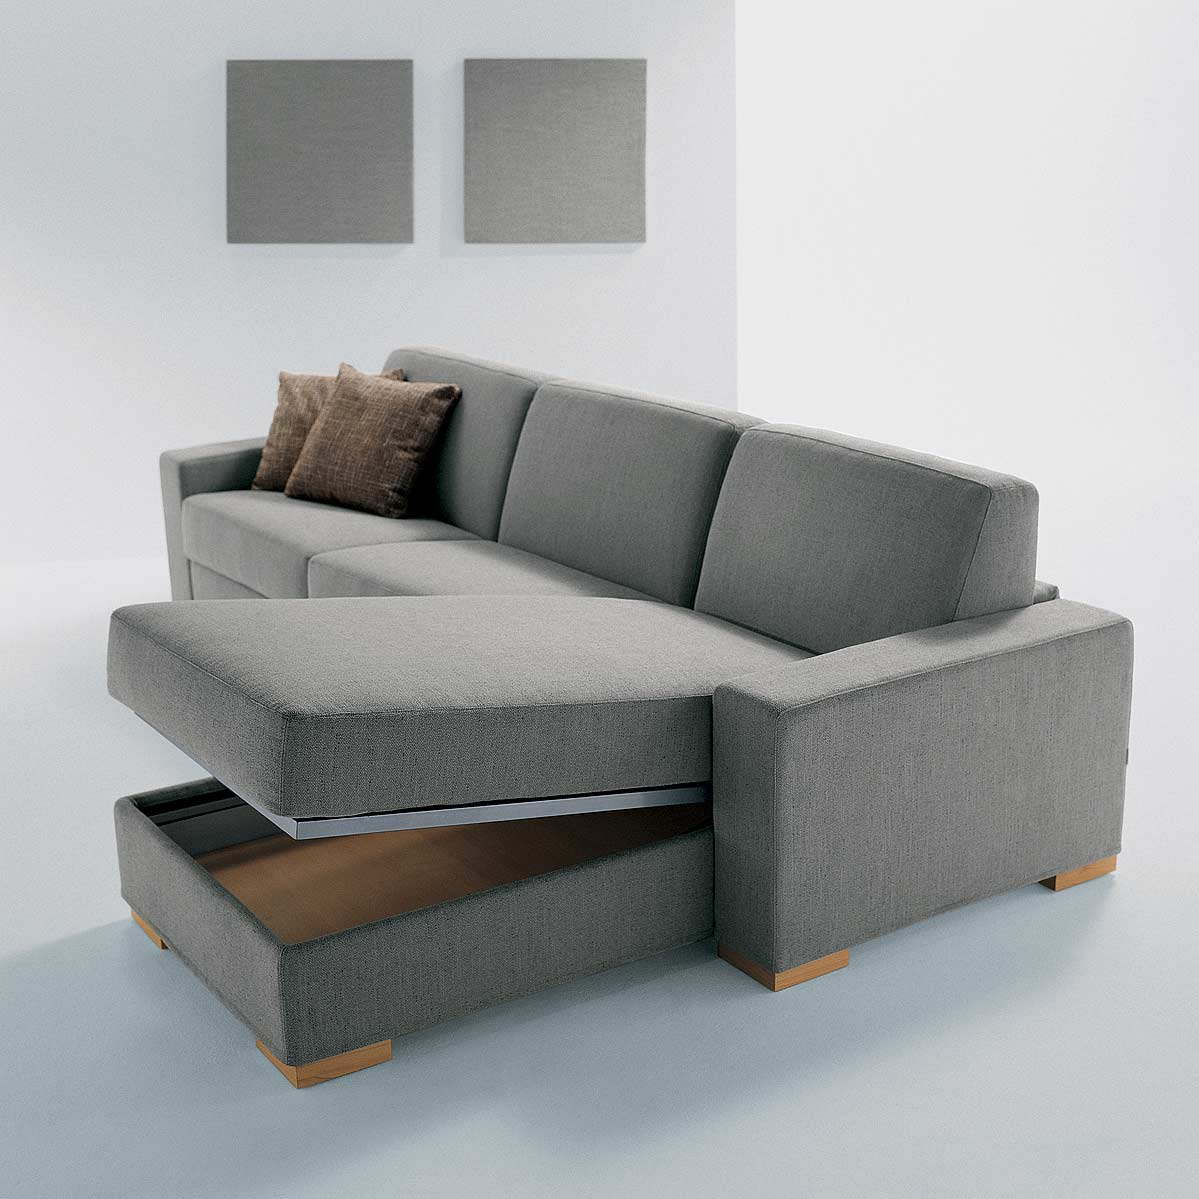 Click Clack Sofa Bed : Sofa chair bed : Modern Leather sofa bed ikea: Convertible sofa bed